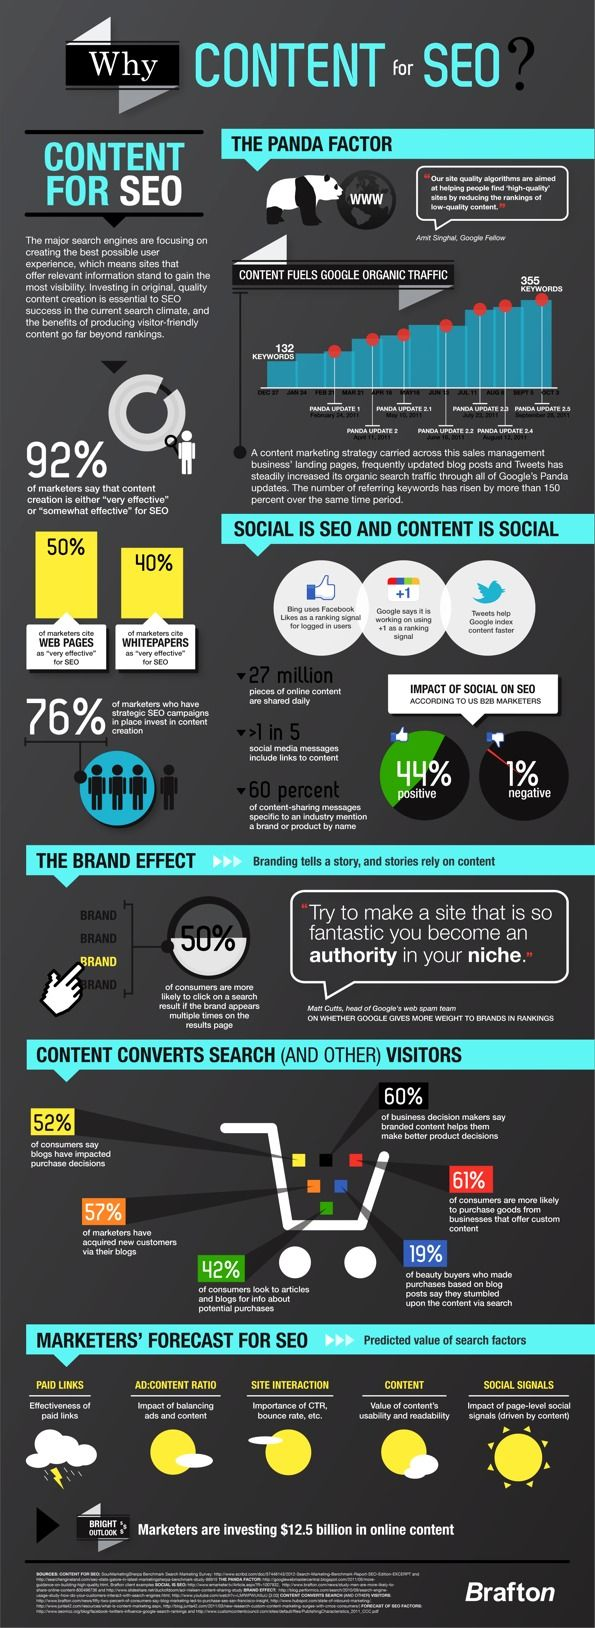 Content is King (It Still Is) and Your Role in Protecting itMarketing Strategies, Social Marketing, Digital Marketing, Internet Marketing, Website, Social Media, Infographic, Content Marketing, Socialmedia